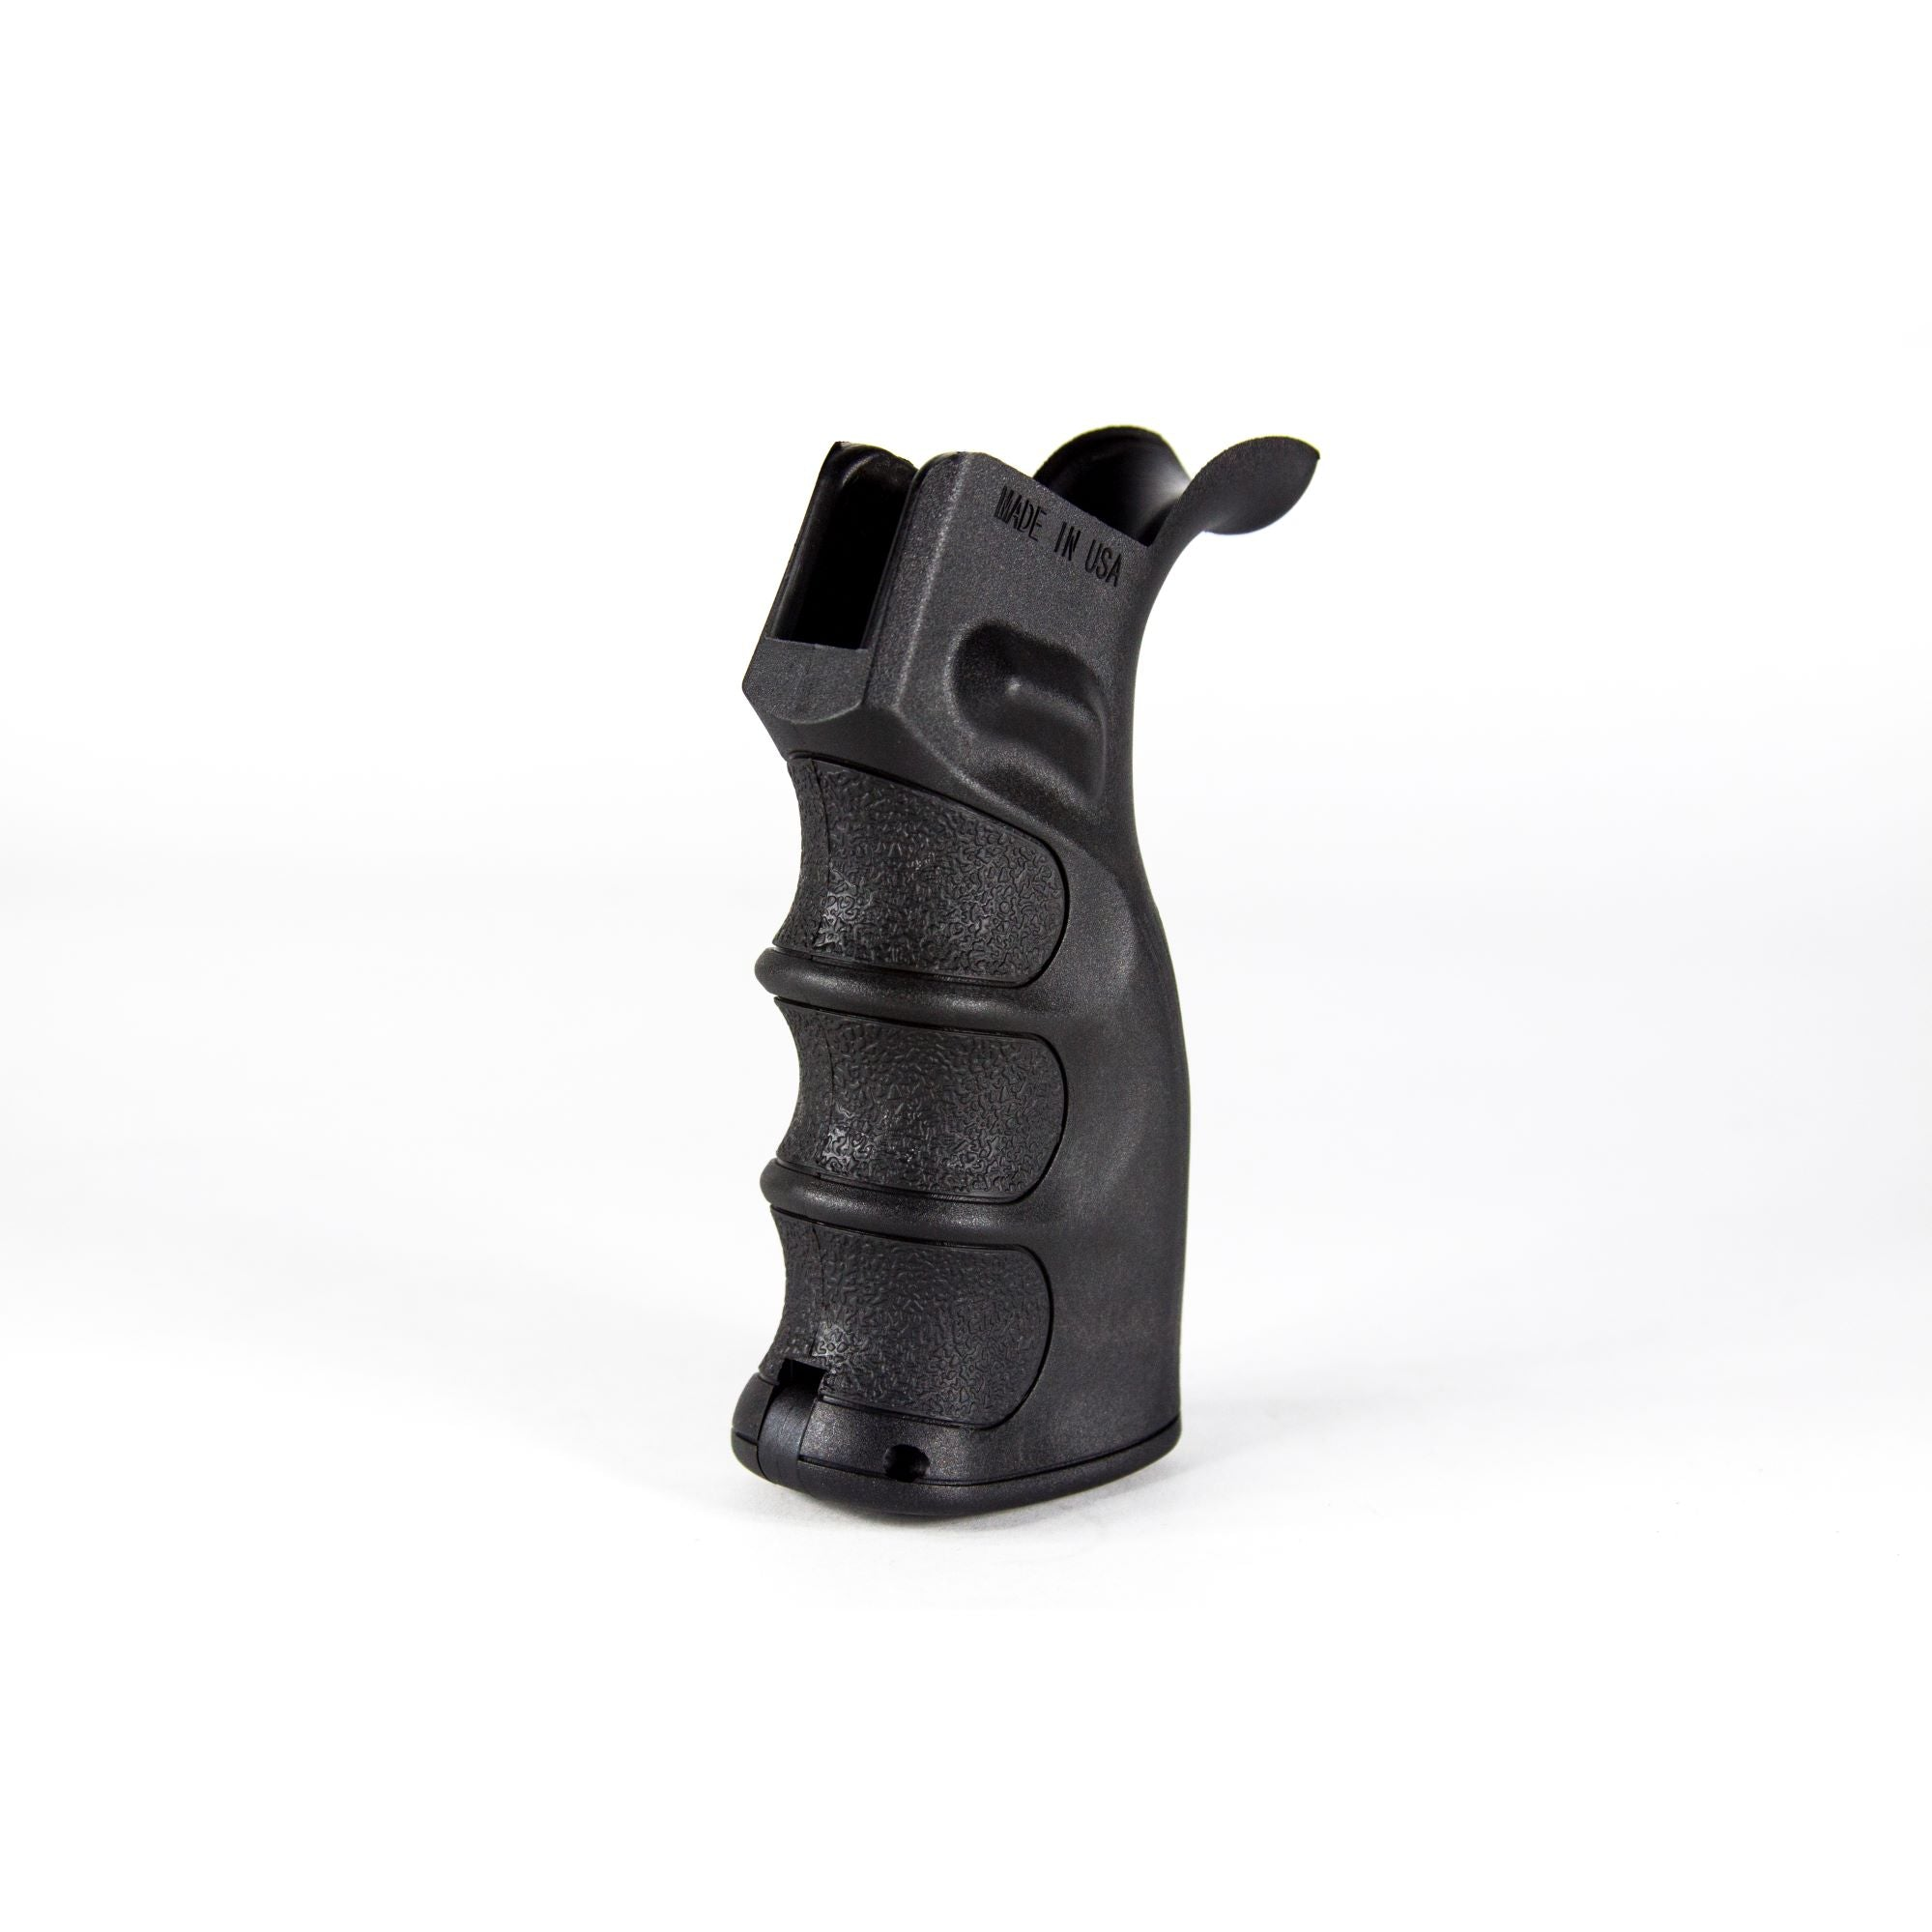 【JE Machine Tech】AR-15 Ergonomic Pistol Grip - Made in the USA #00496